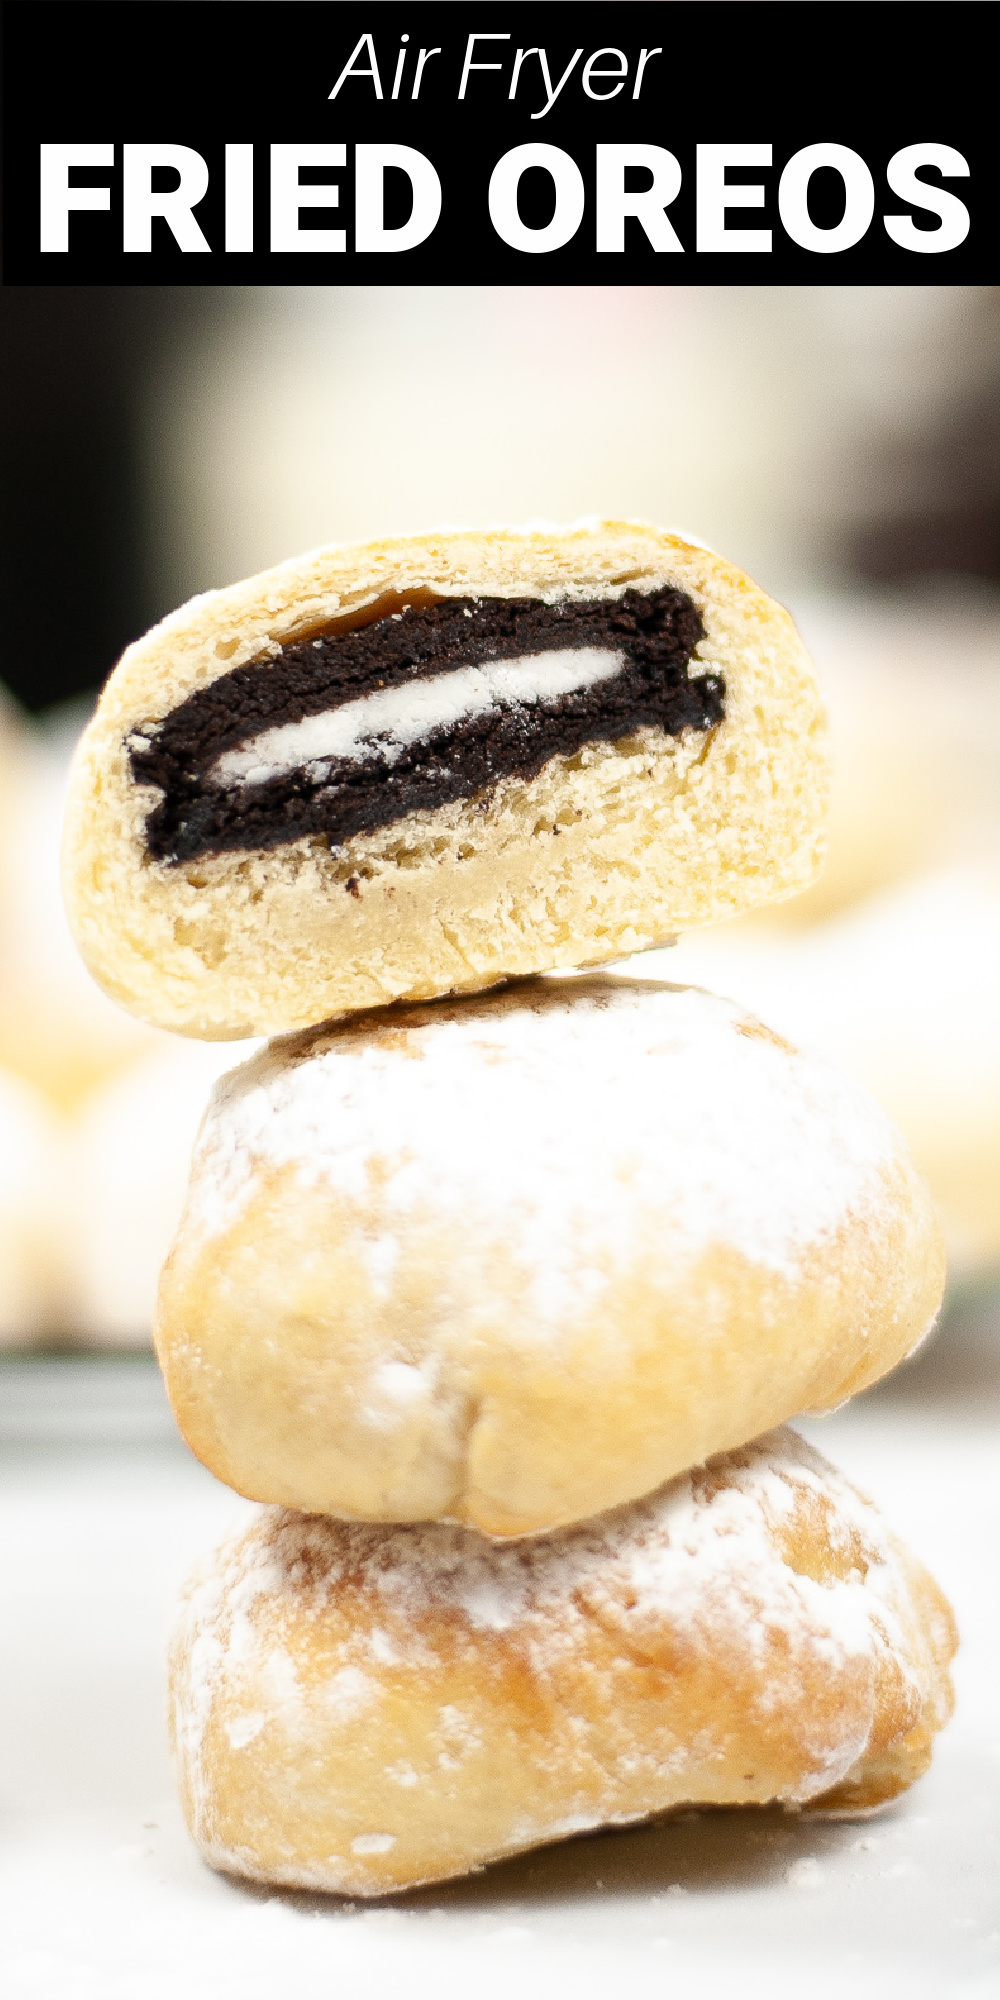 Air fried Oreos are an easy take on the classic fried Oreos you find at the fair! Oreos are dipped in a sweet batter then air fried and dusted with powdered sugar.